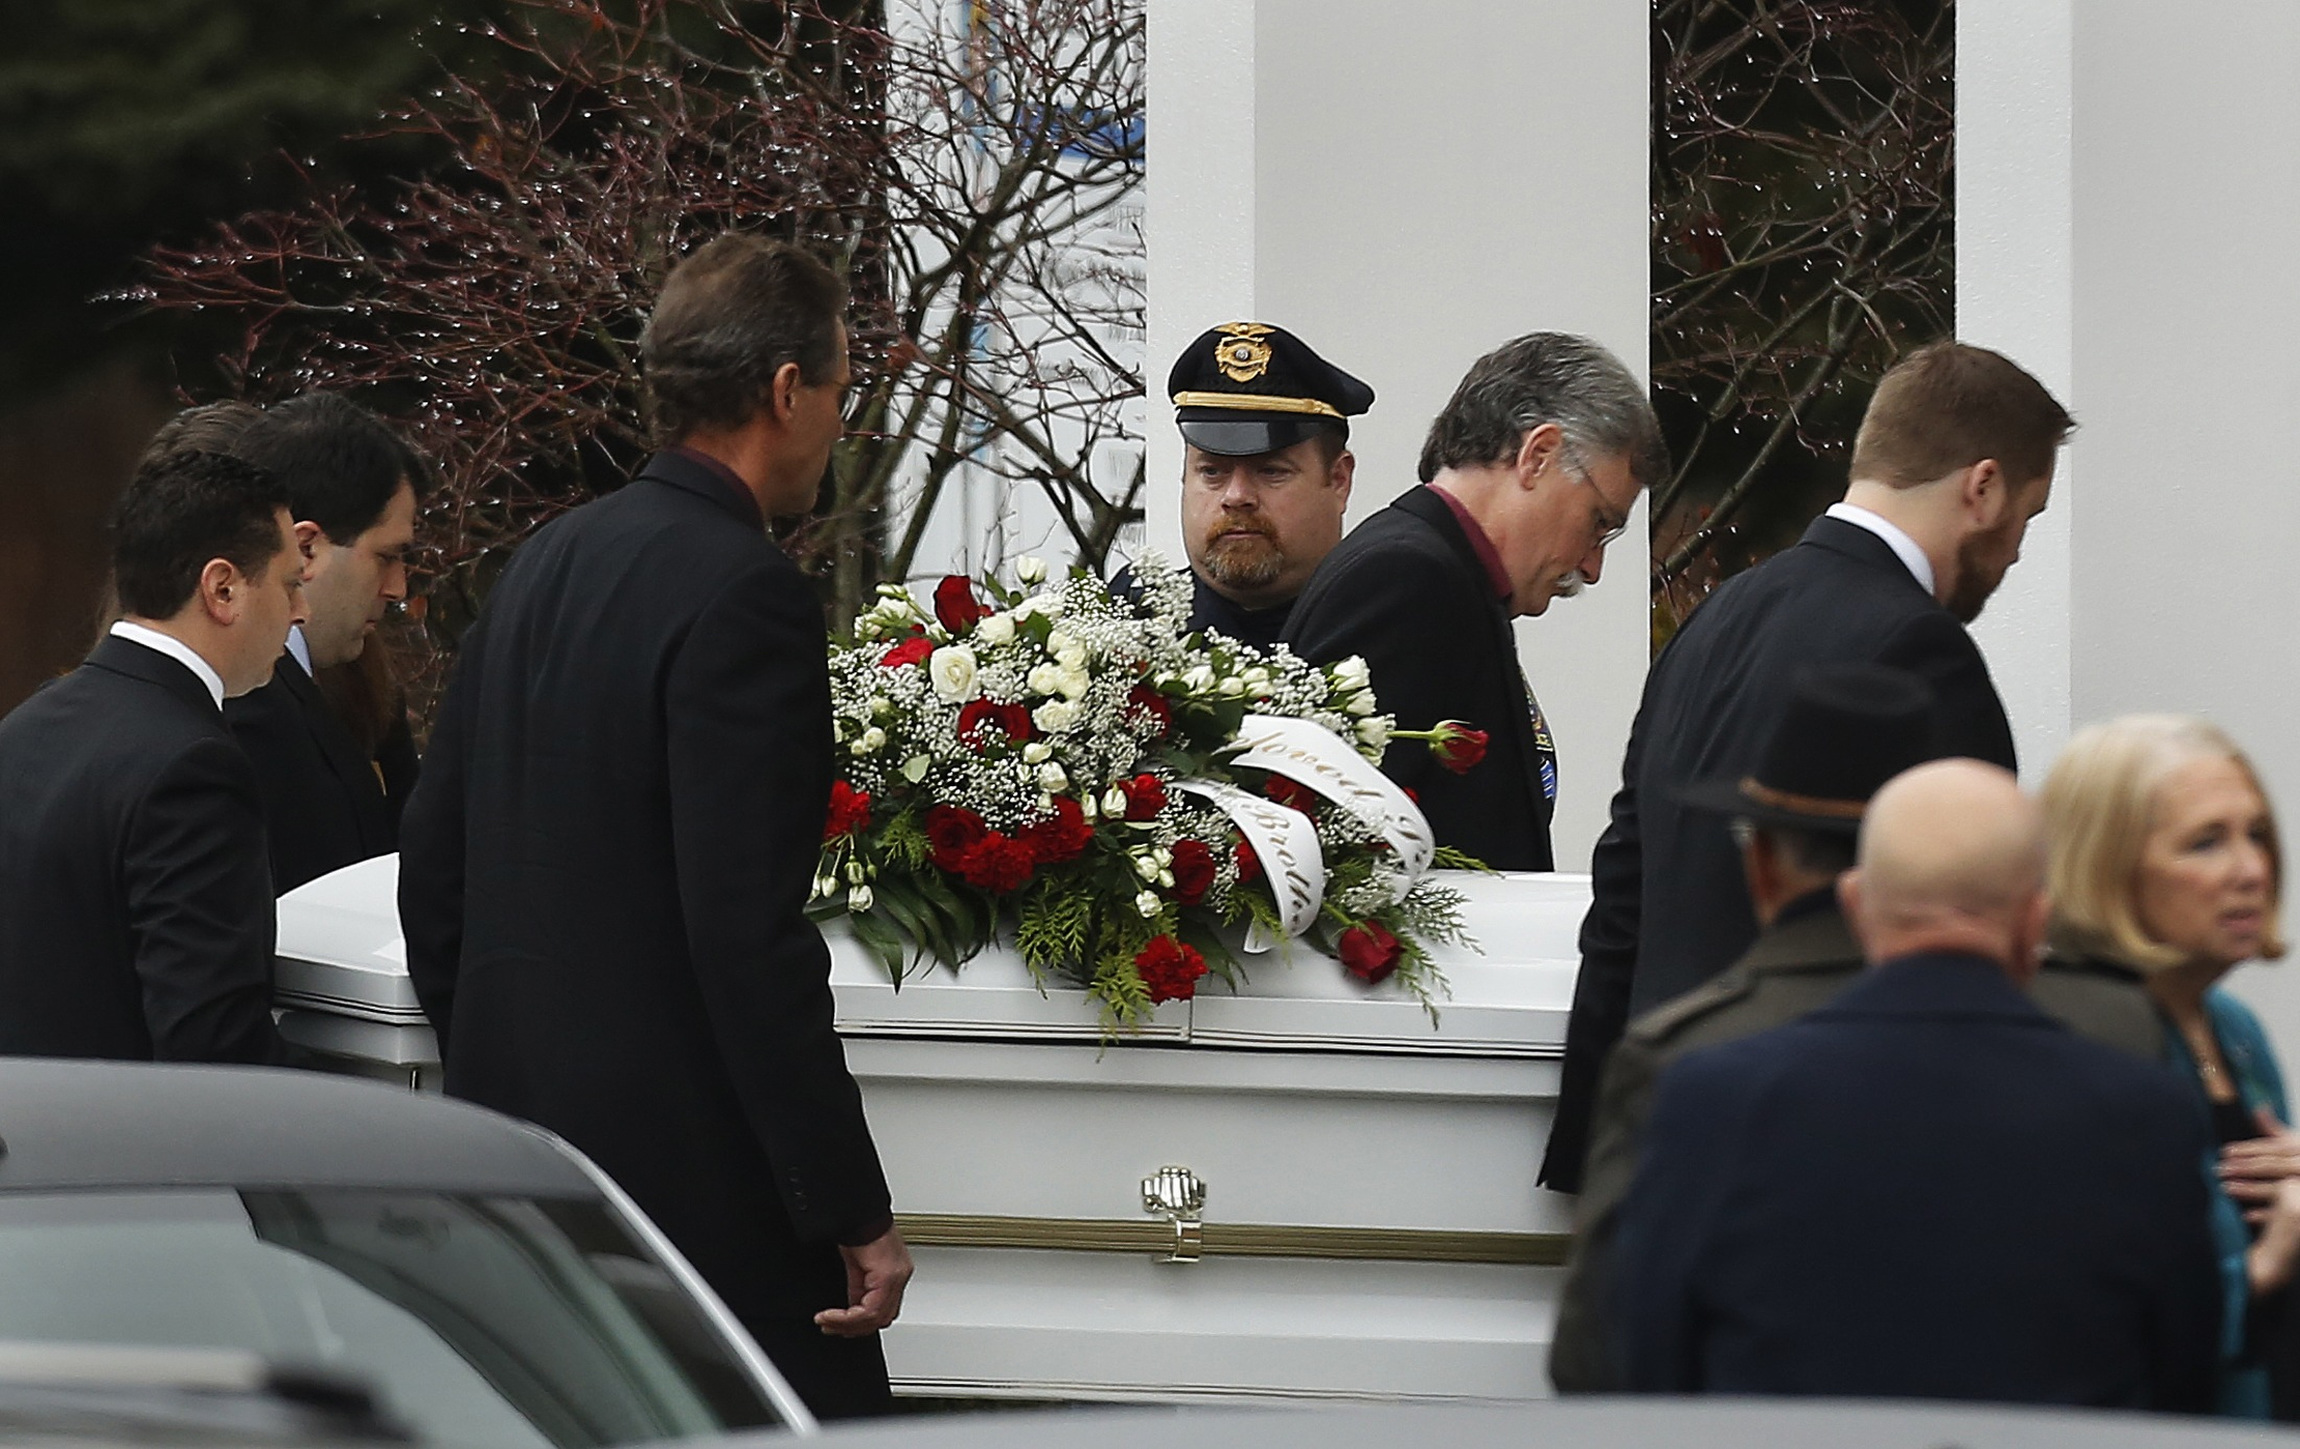 At funerals, Newtown pastor tells mourners child victims